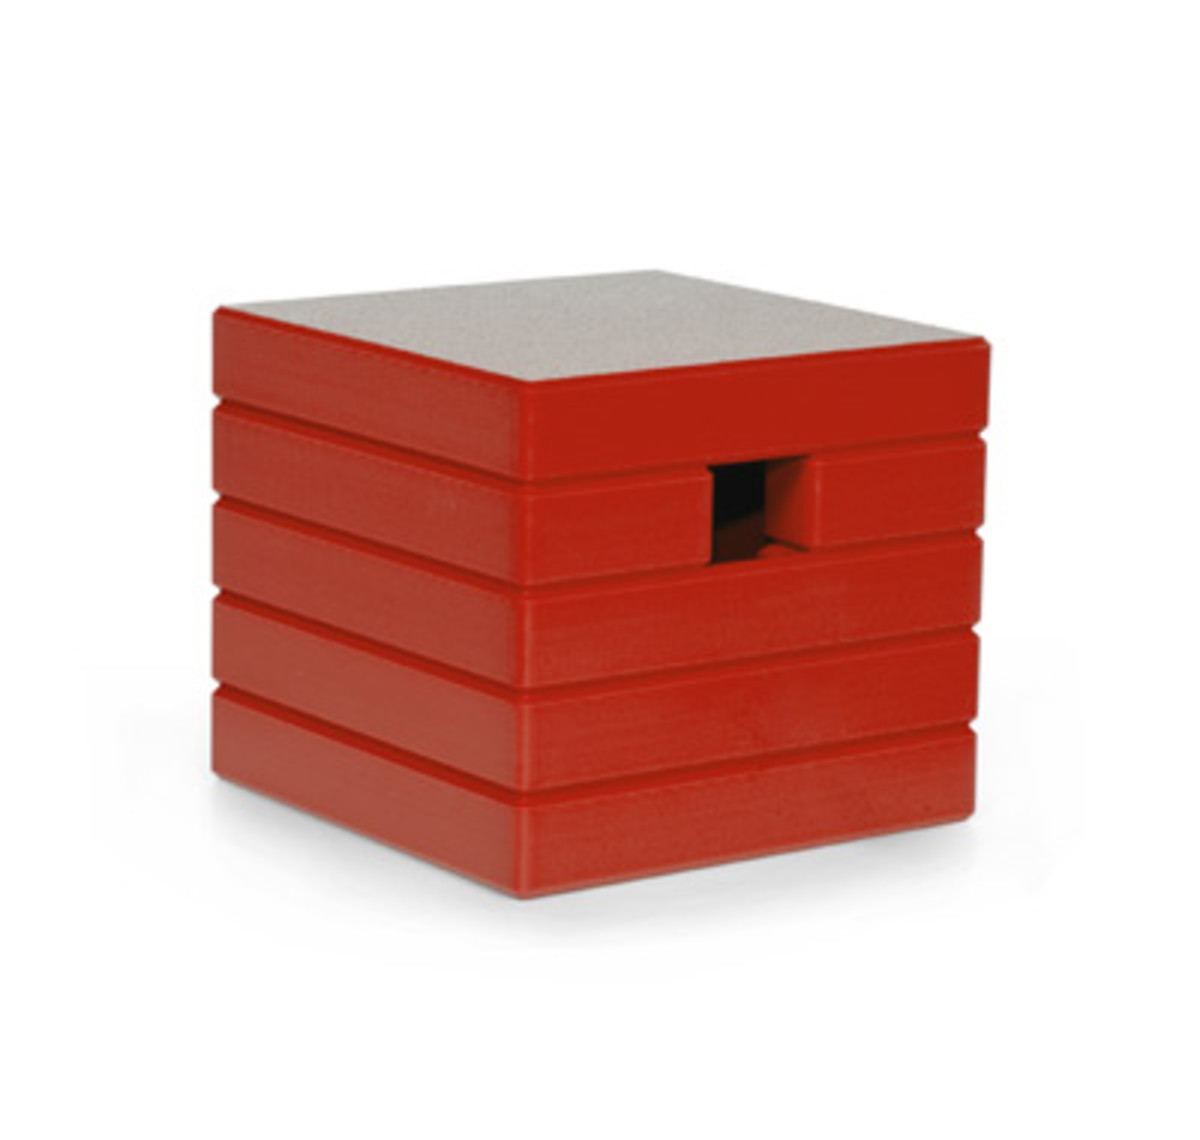 09_birdhouse_cube_red